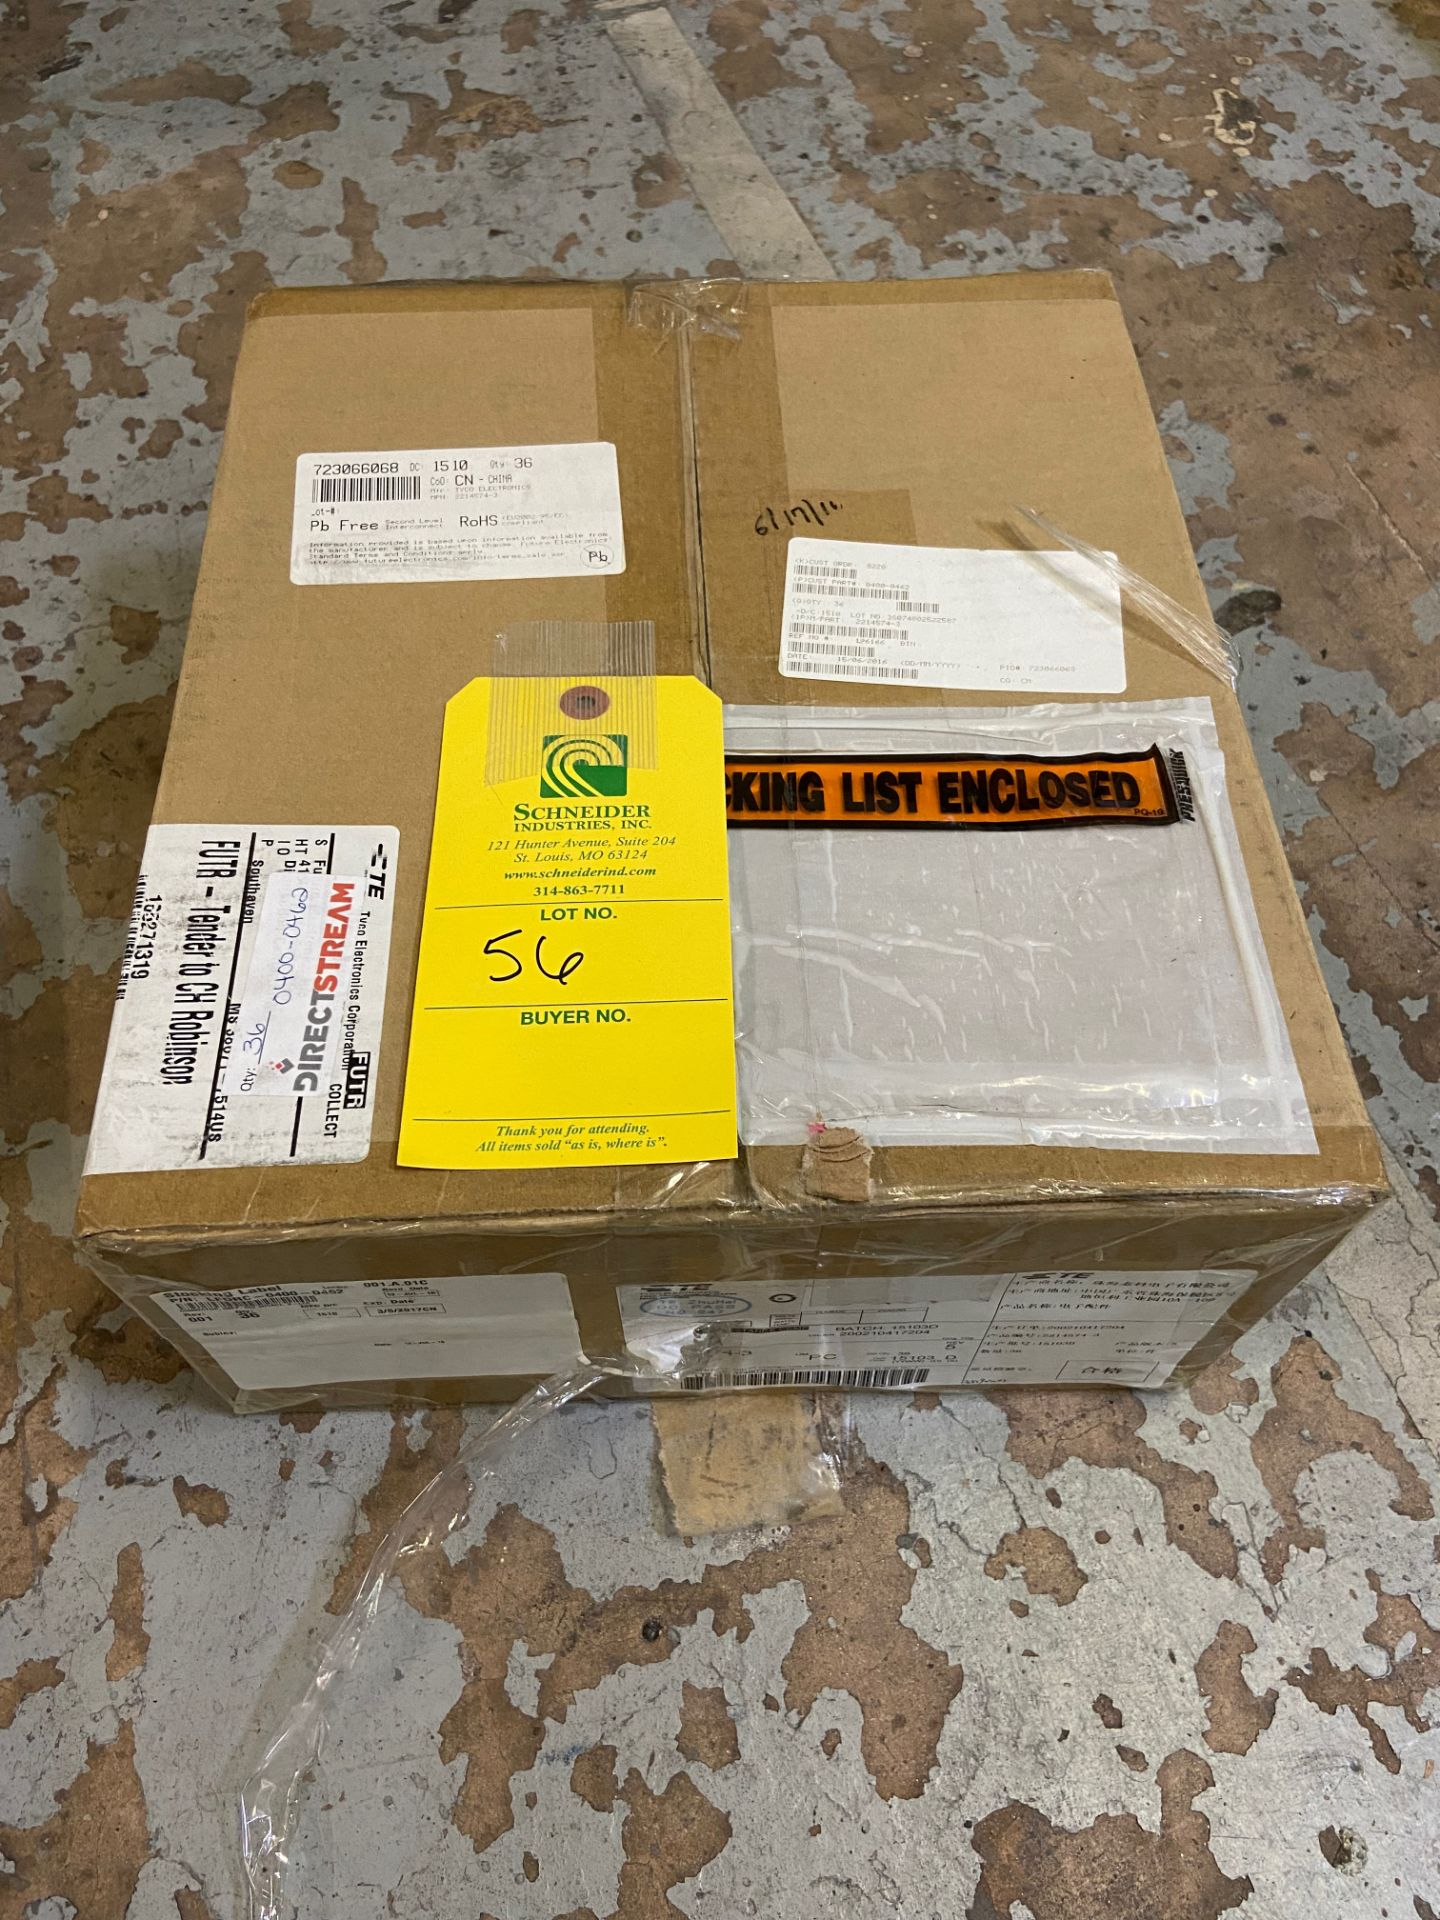 TE Connectivity 2214574-3, Connector Telephone and Telecom, Conn QSFP F 152 POS Press Fit RA Thru- - Image 2 of 7